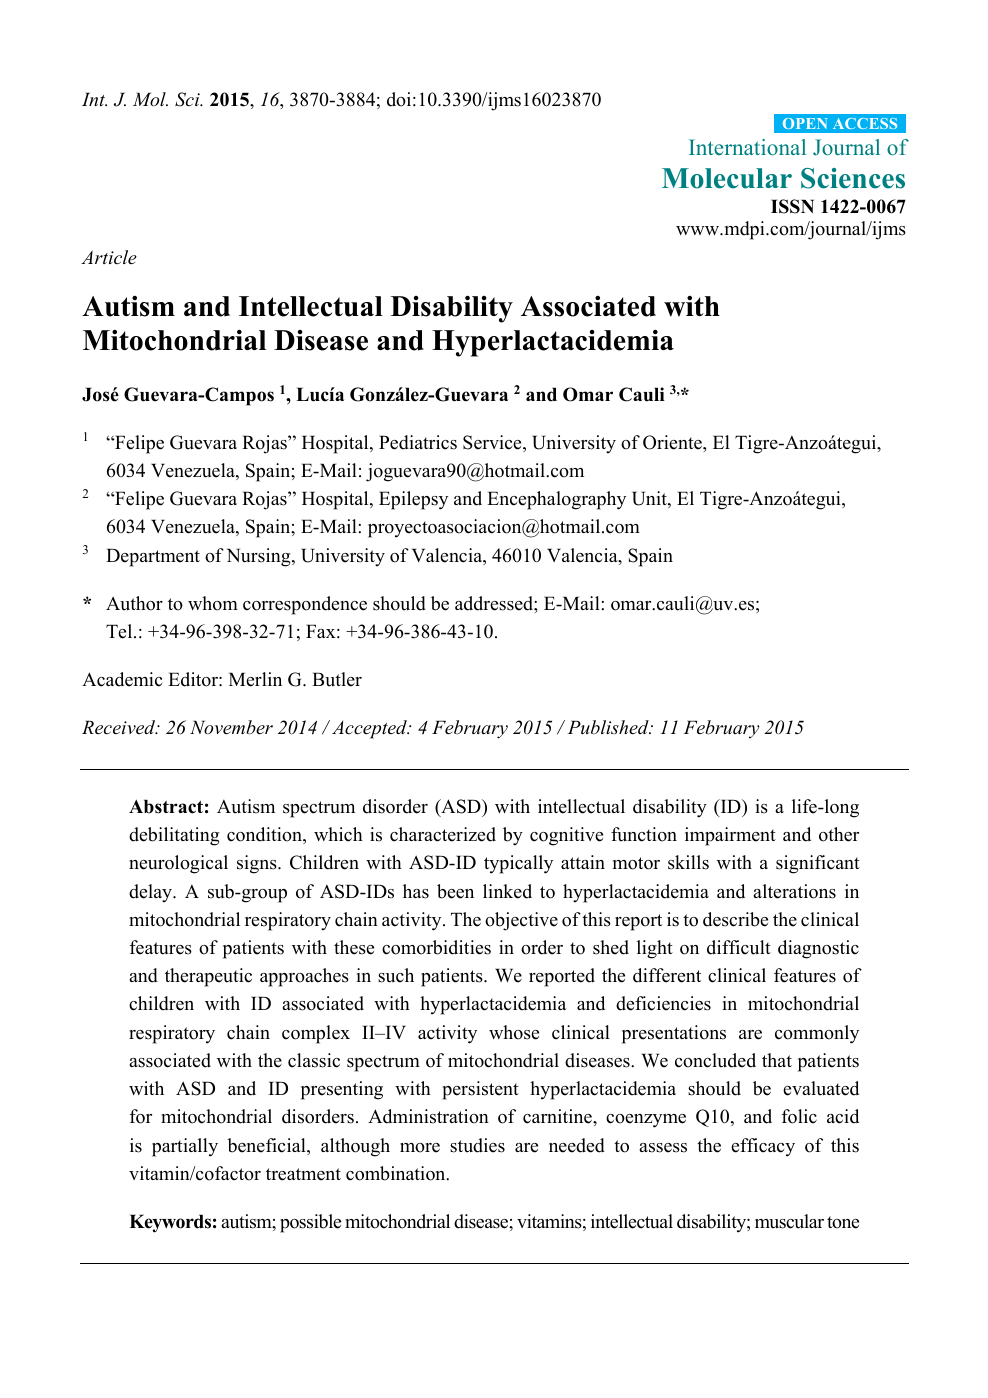 Autism and Intellectual Disability Associated with